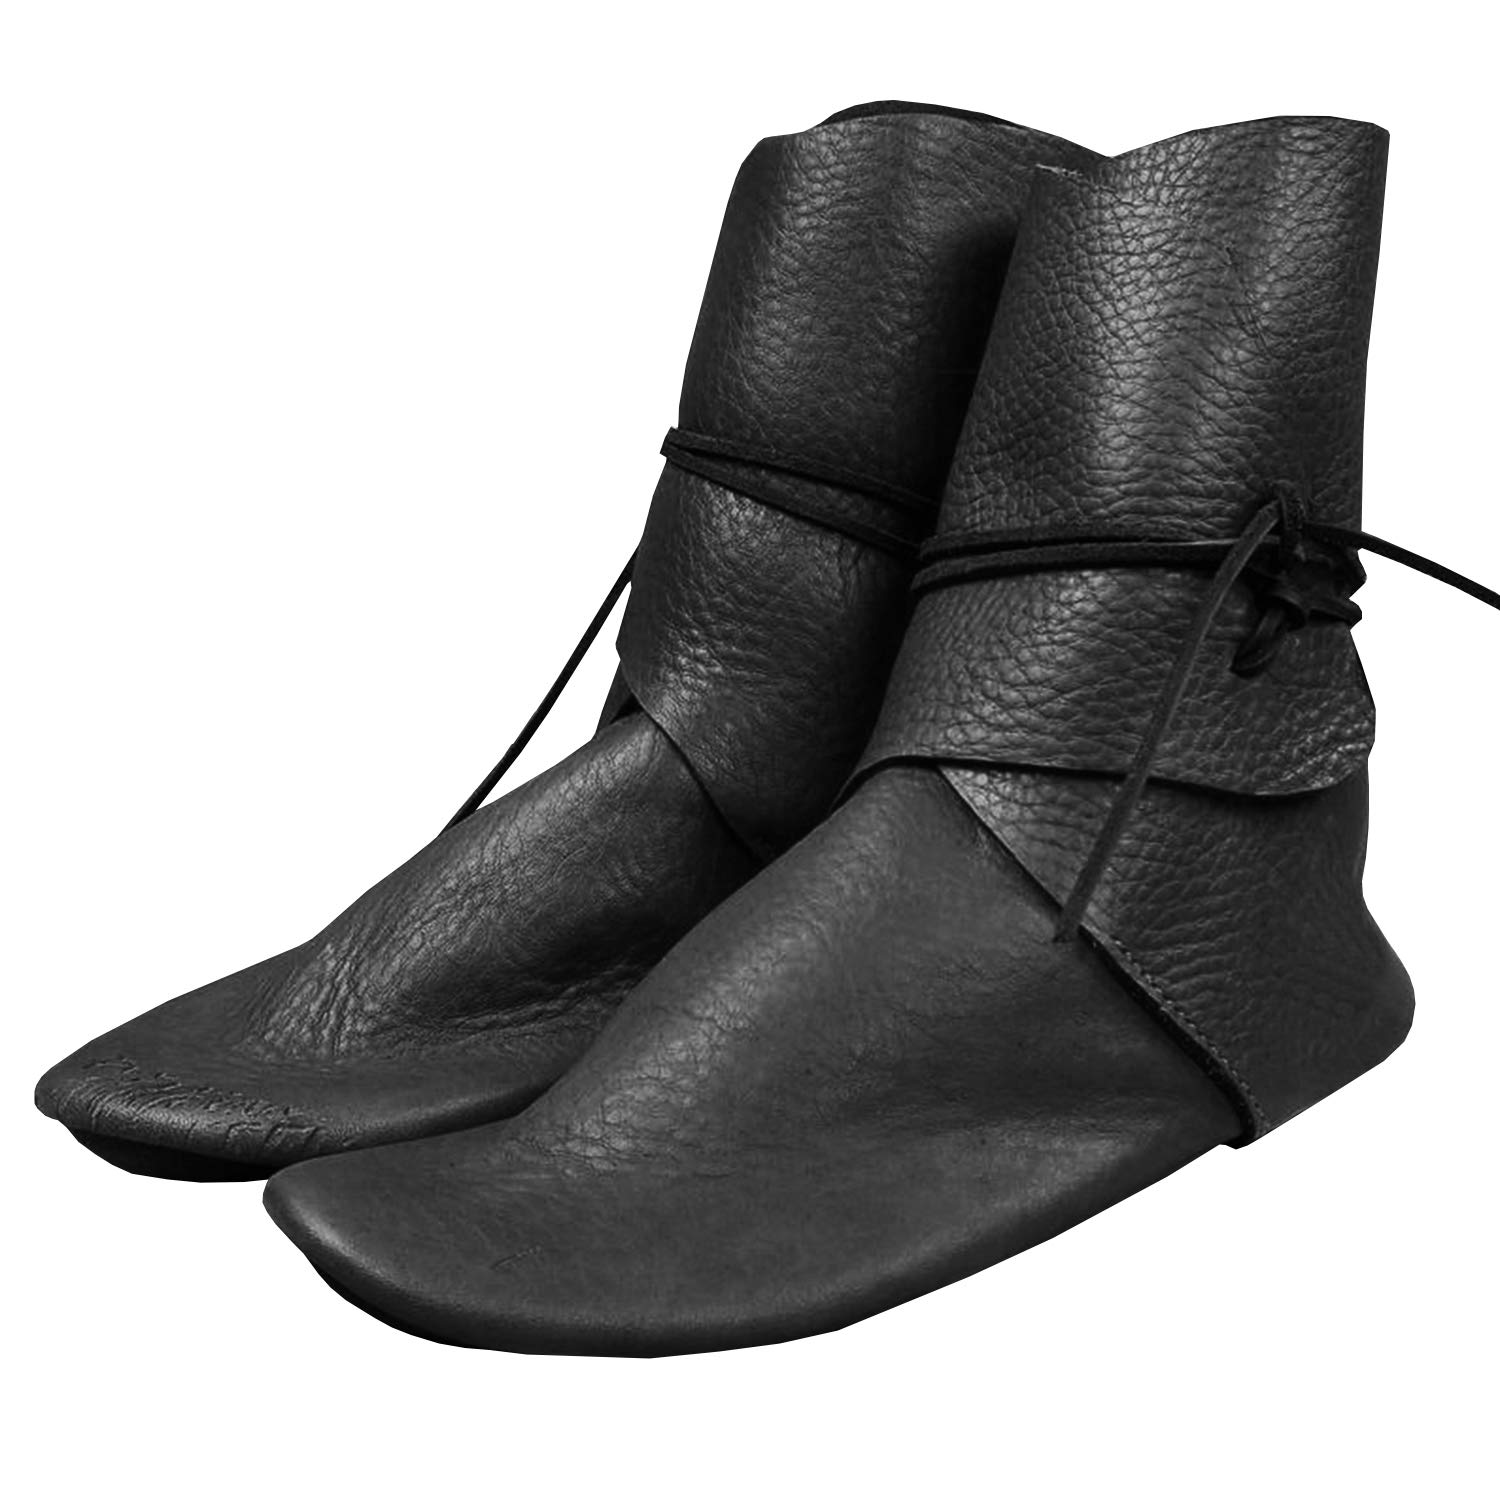 Mens Renaissance Viking Boots Medieval Strappy Lace Up Faux Leather Non-Slip Flat Pirate Cosplay Shoes